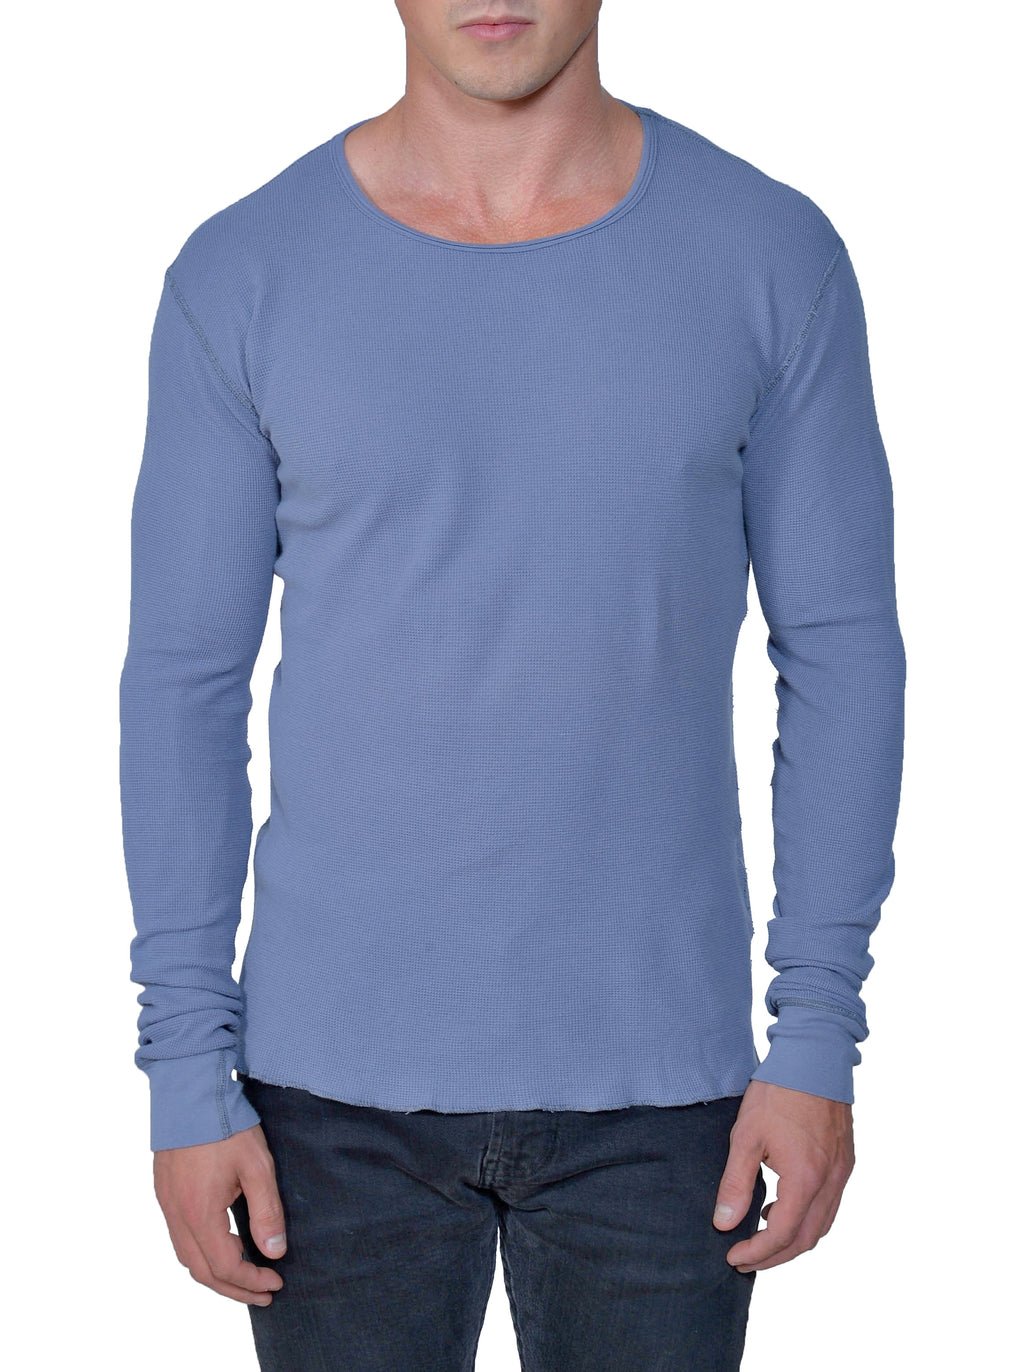 Storm organic lightweight long sleeve thermal crew neck tee